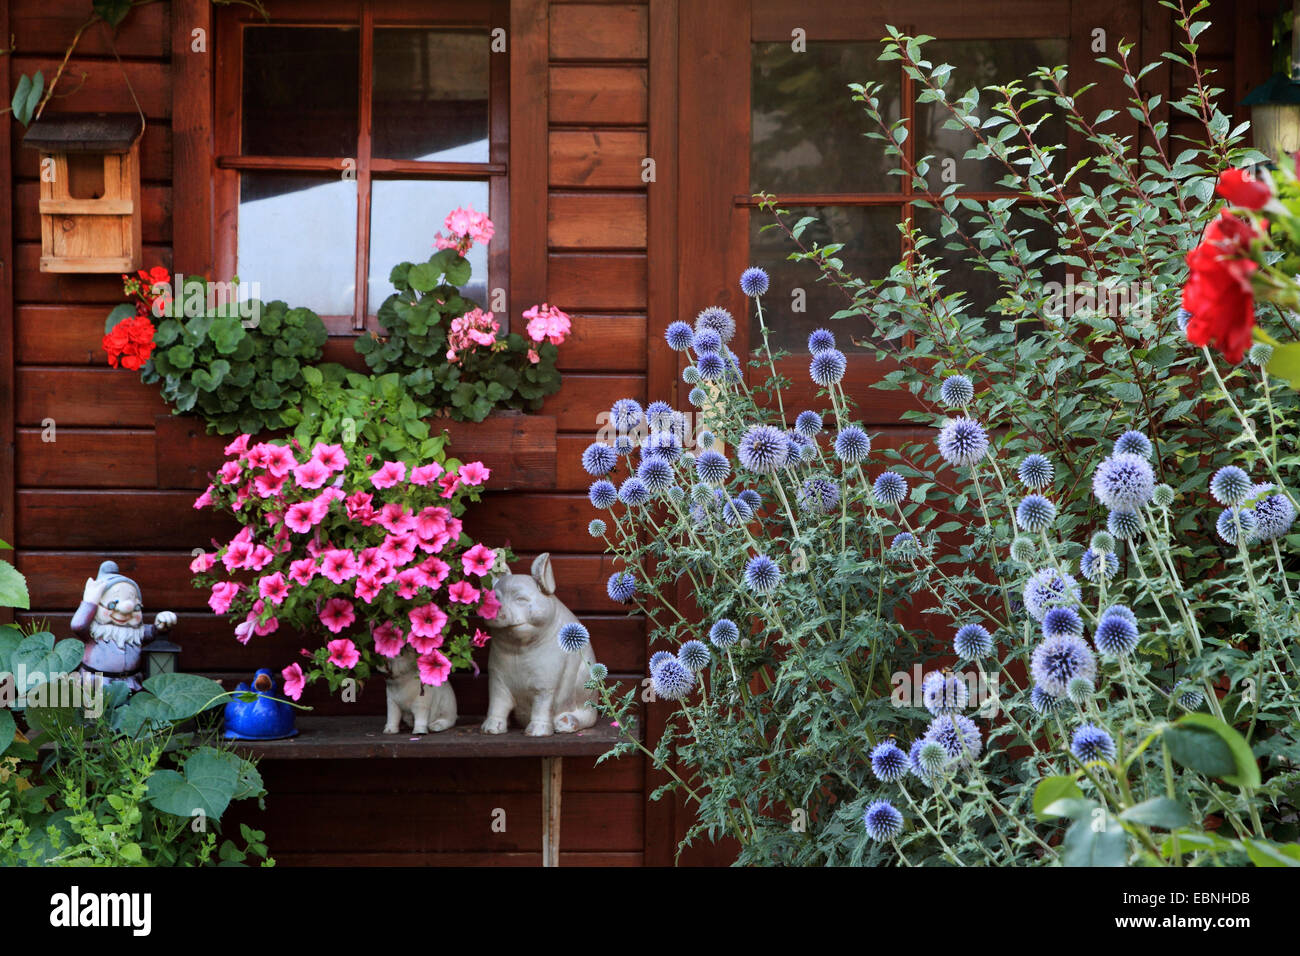 Petunias, geraniums and globe thistles at a garden hut with pigs and garden gnome, Germany - Stock Image